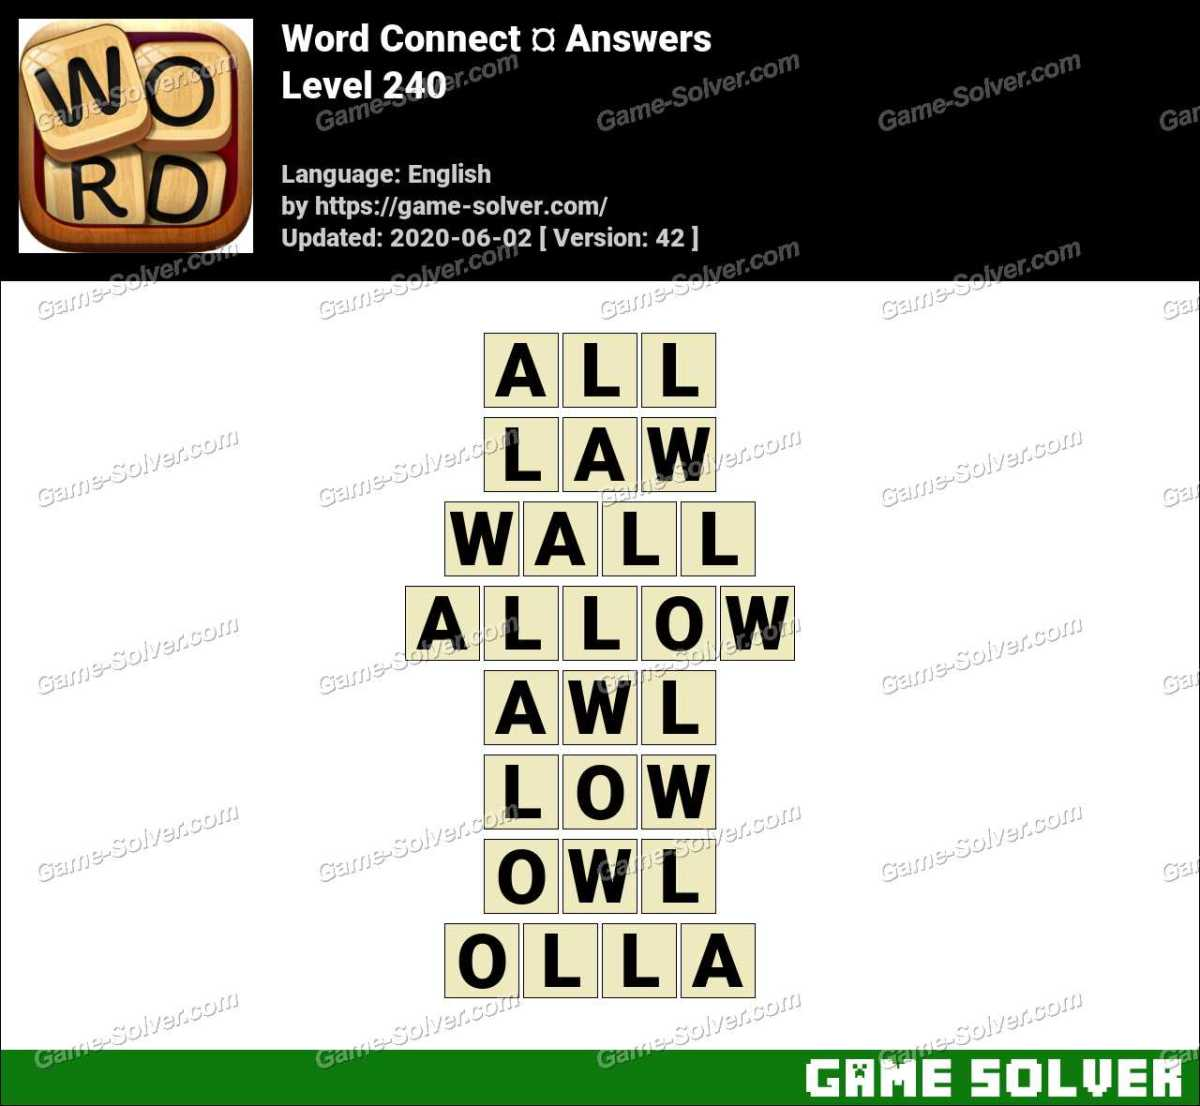 Word Connect Level 240 Answers